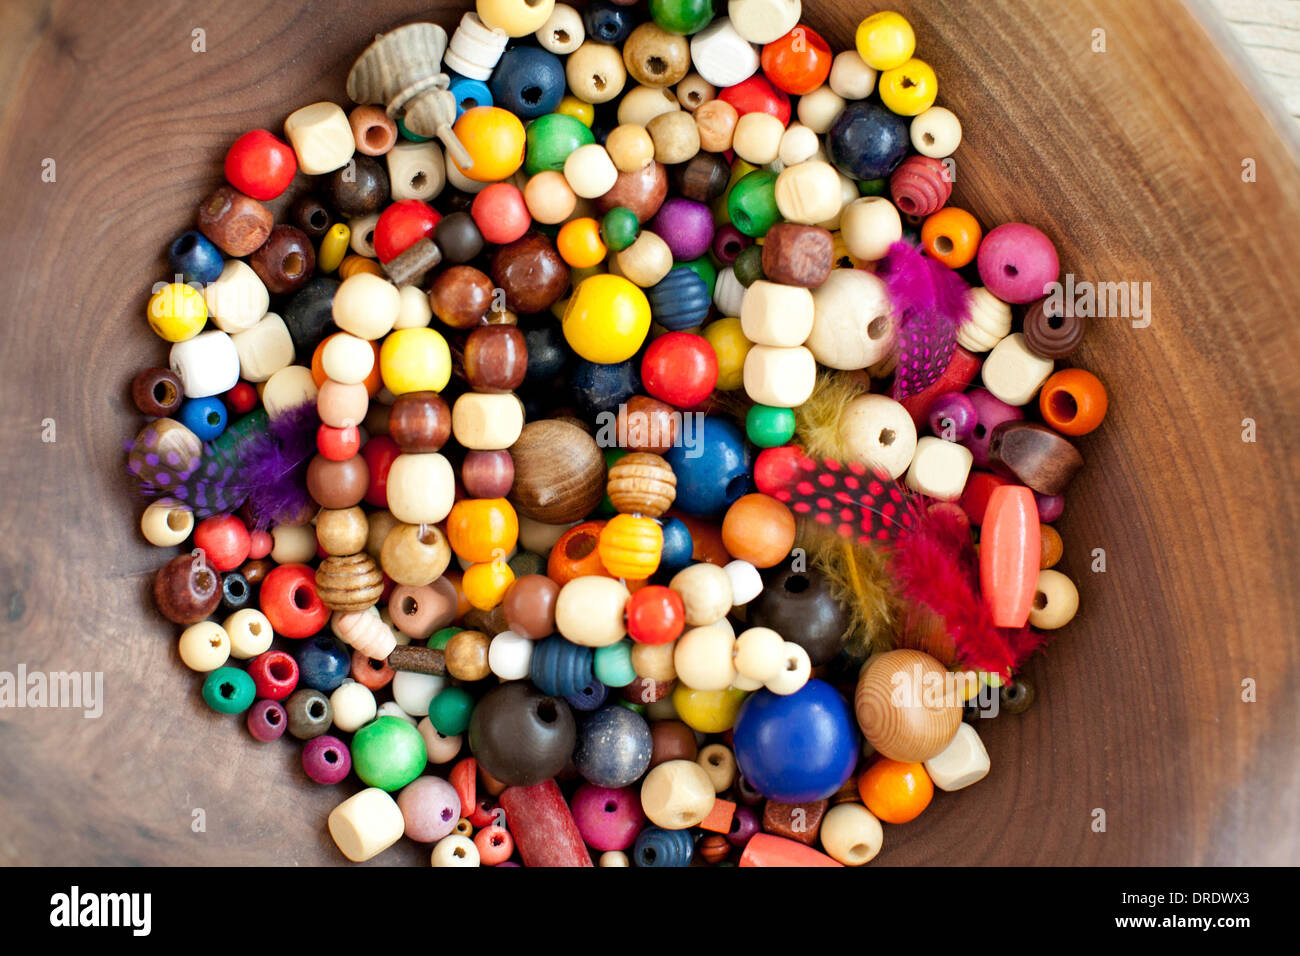 Detail bowl of wooden beads - Stock Image